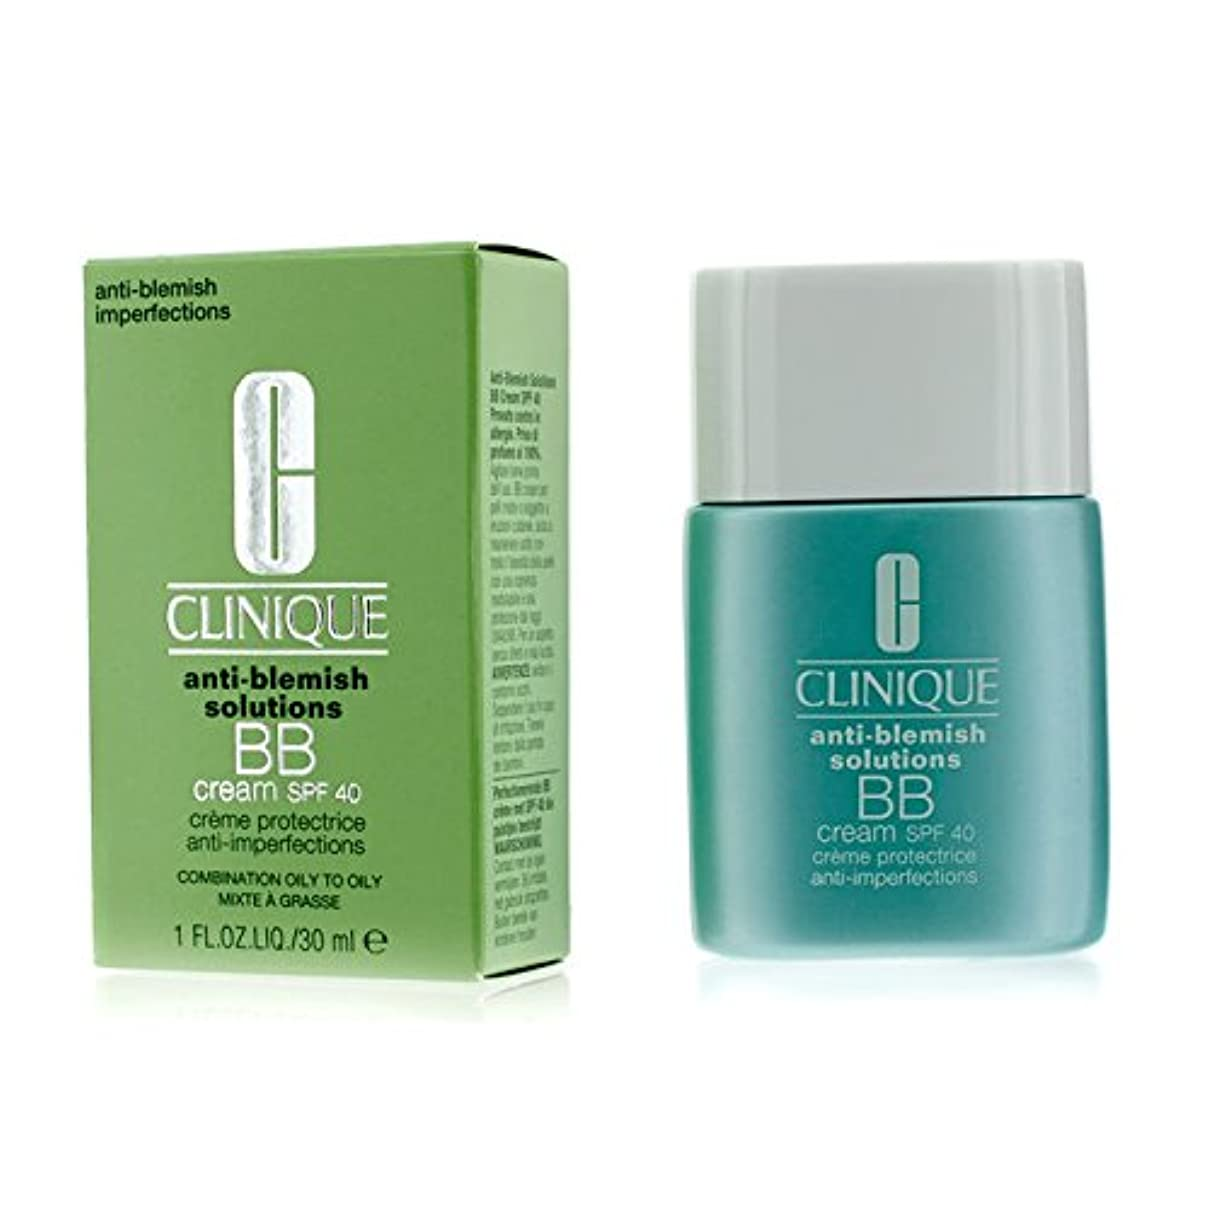 痛み暖かさ母音クリニーク Anti-Blemish Solutions BB Cream SPF 40 - Light Medium (Combination Oily to Oily) 30ml/1oz並行輸入品